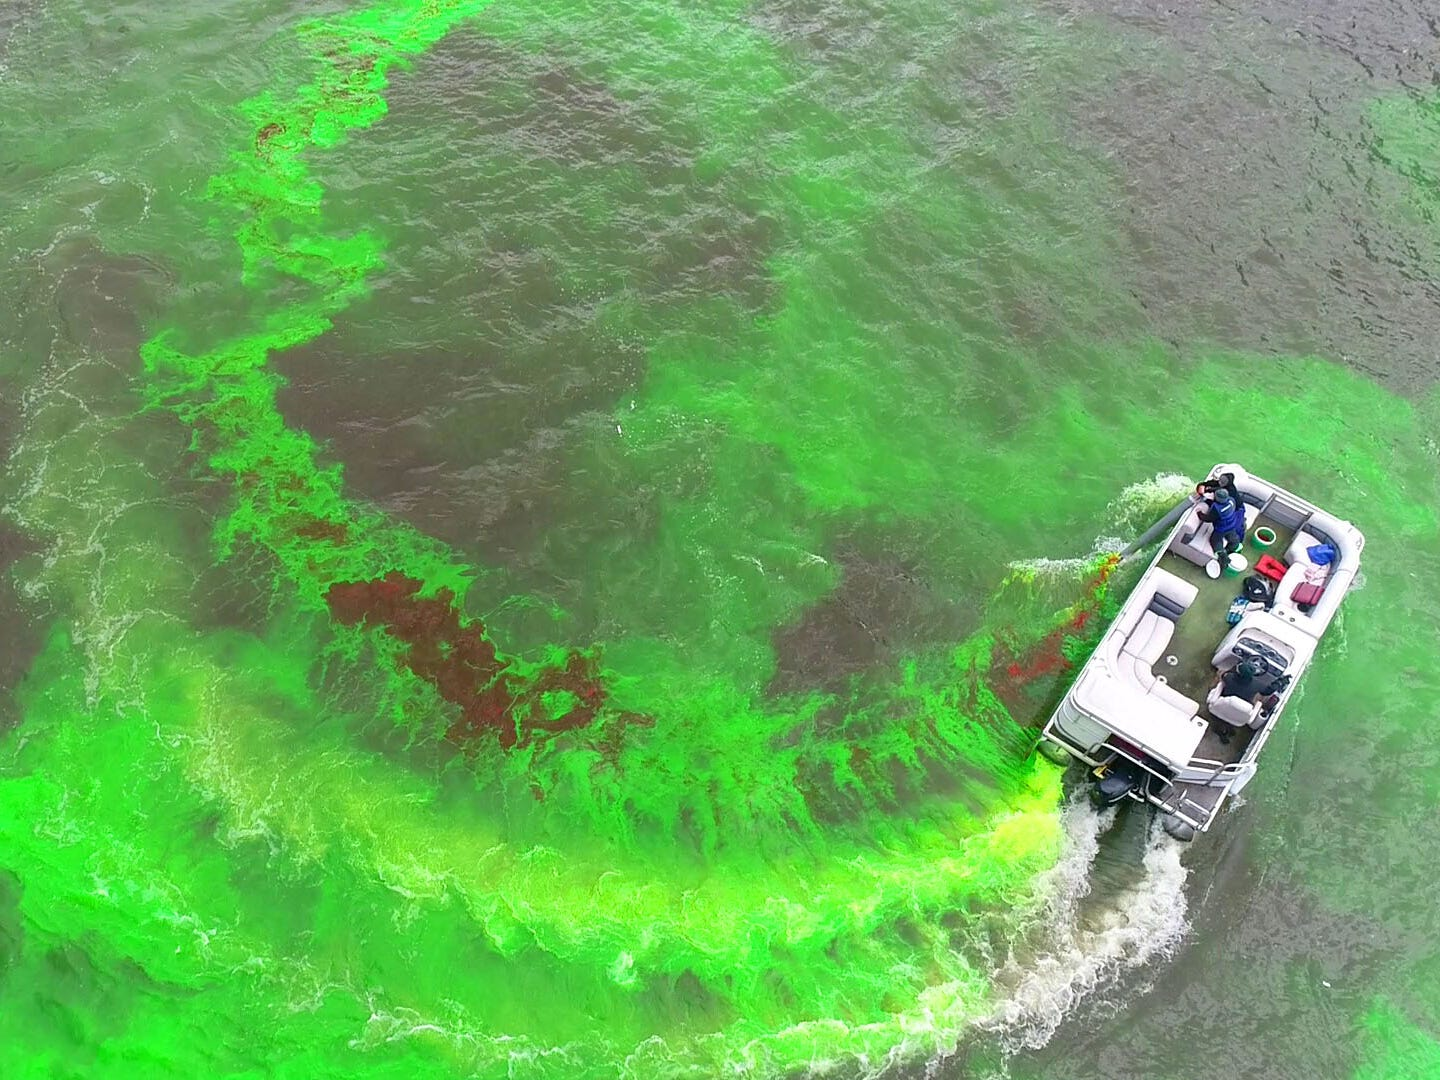 A boat dumps green dye near the West  McKinley Avenue bridge. Milwaukee celebrated the start of the Milwaukee Bucks in the NBA Playoffs by dyeing the Milwaukee River green in Milwaukee on Friday, April 12, 2019. The Bucks partnered with the city and the state Department of Natural Resources to dye the river green and throw a kickoff party near Fiserv Forum.